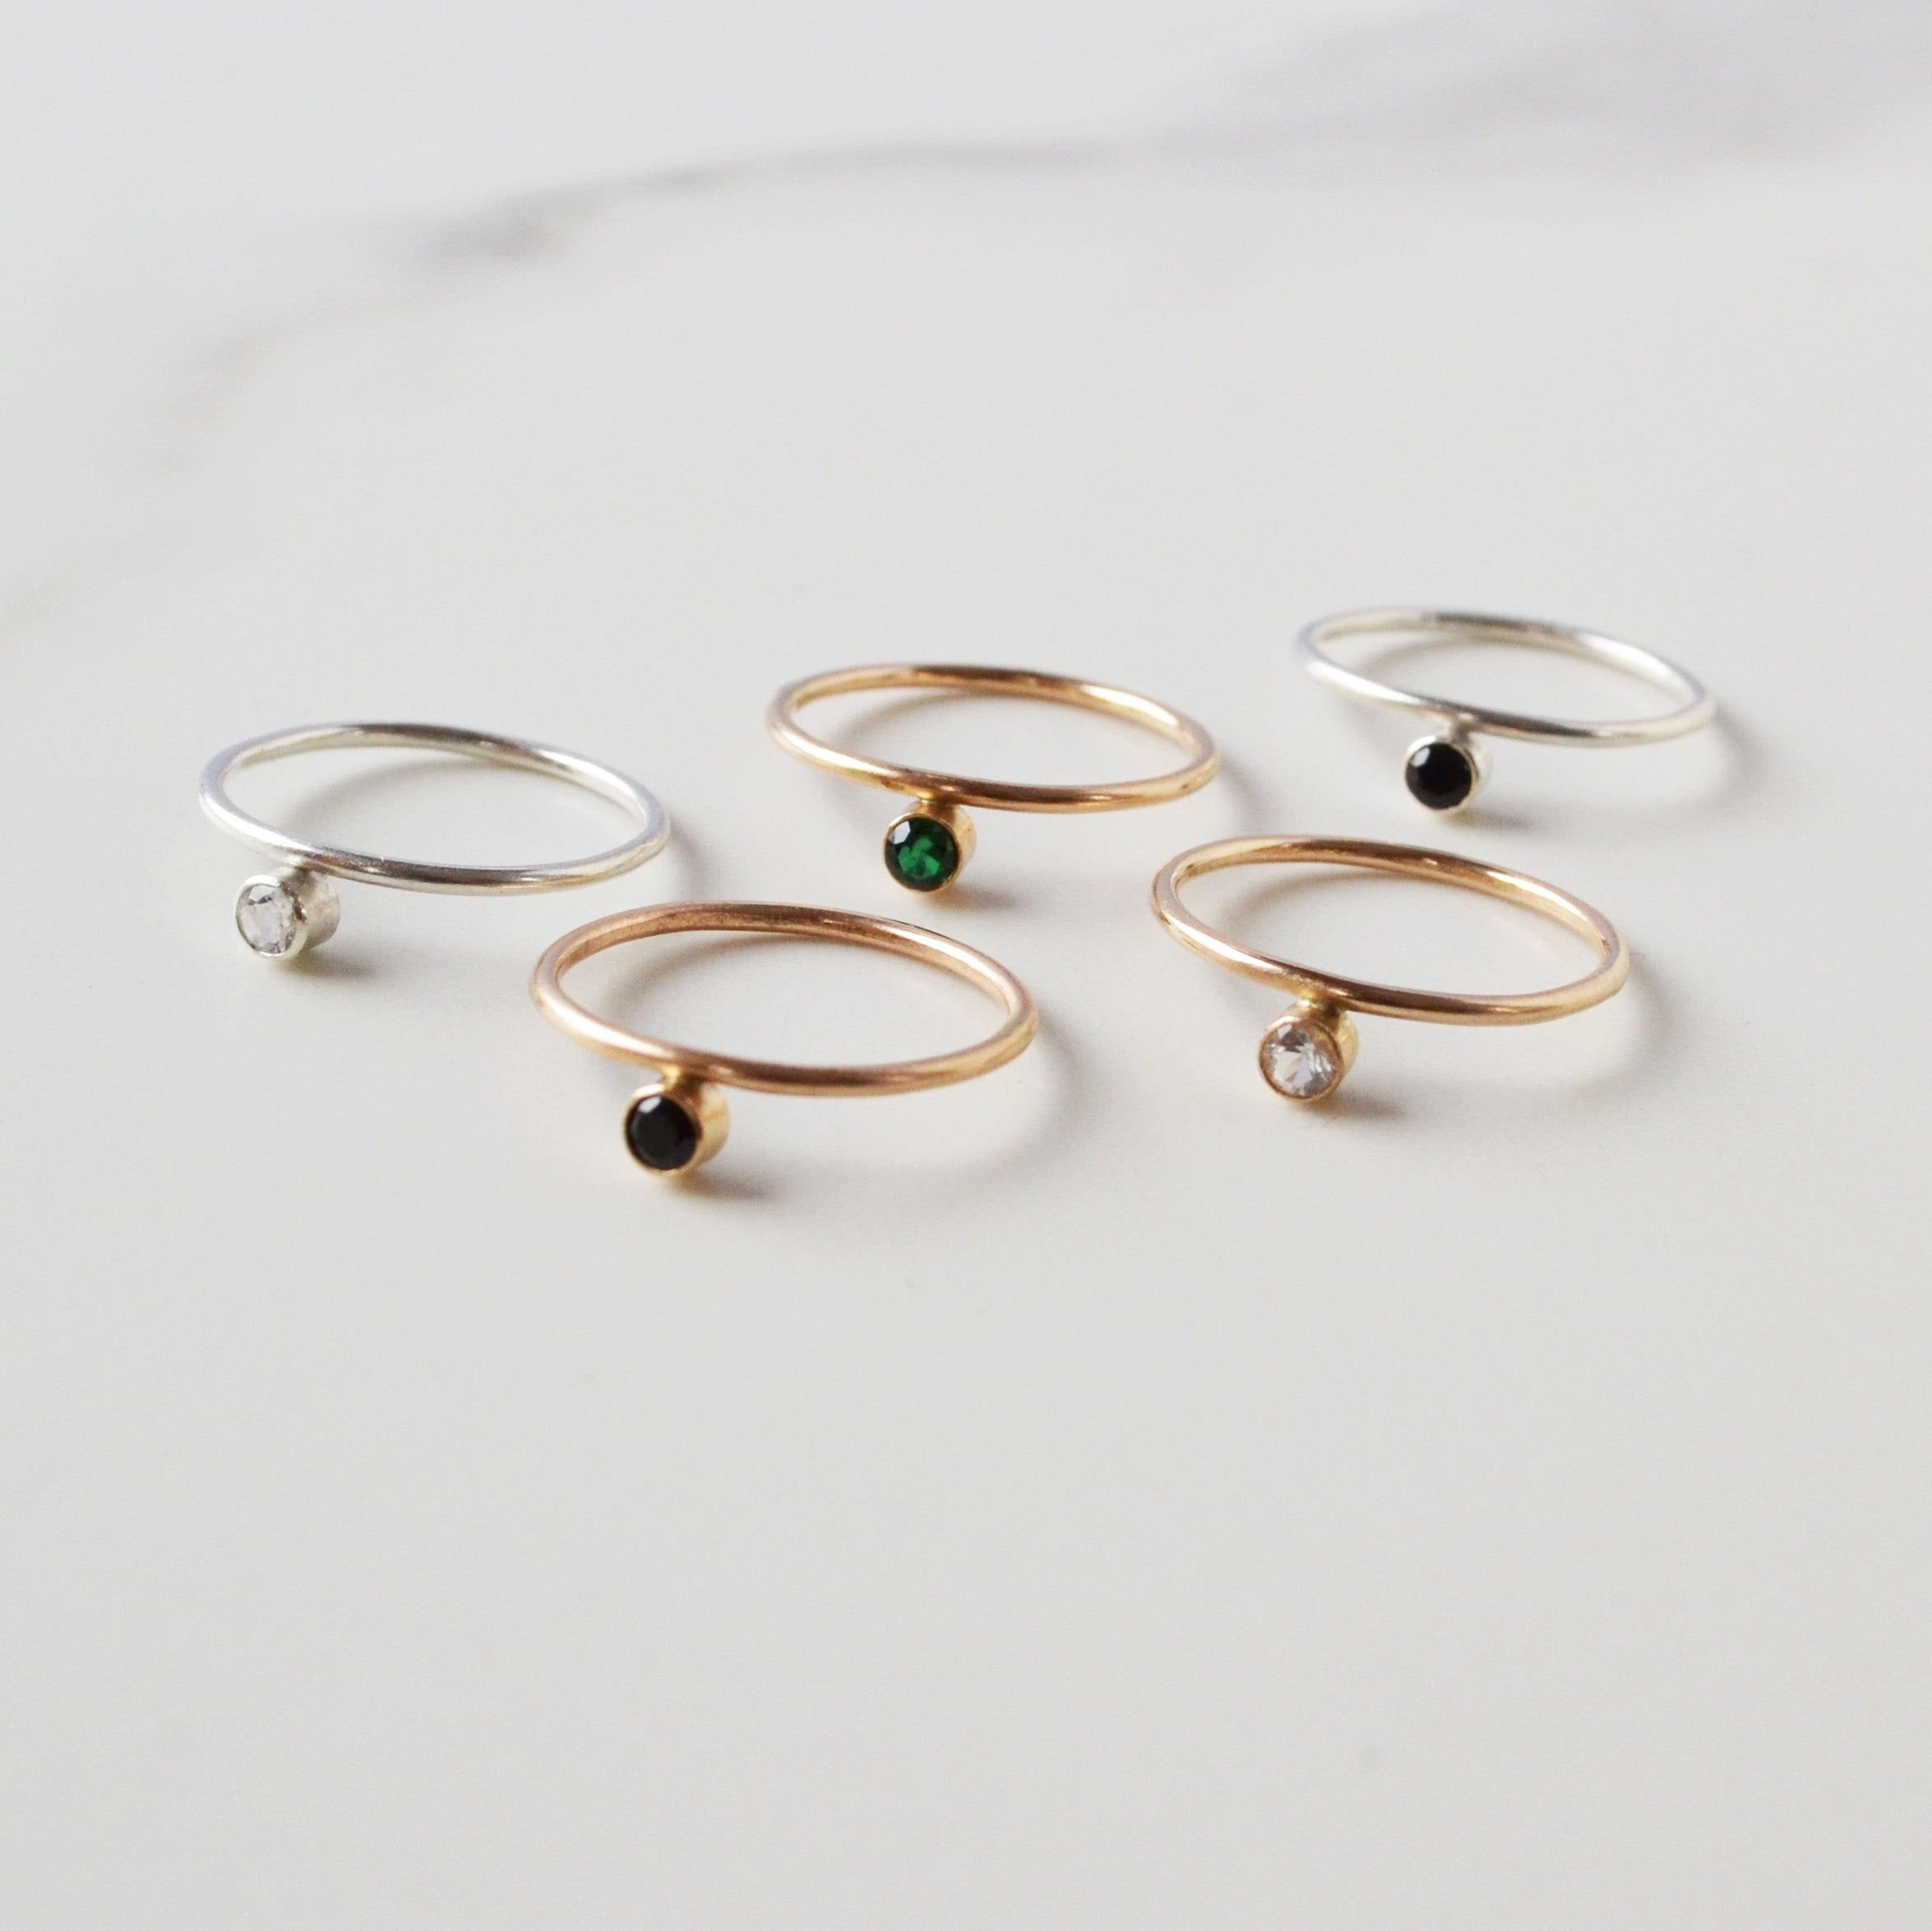 Offset Gemstone Stacking Ring Gold Silver